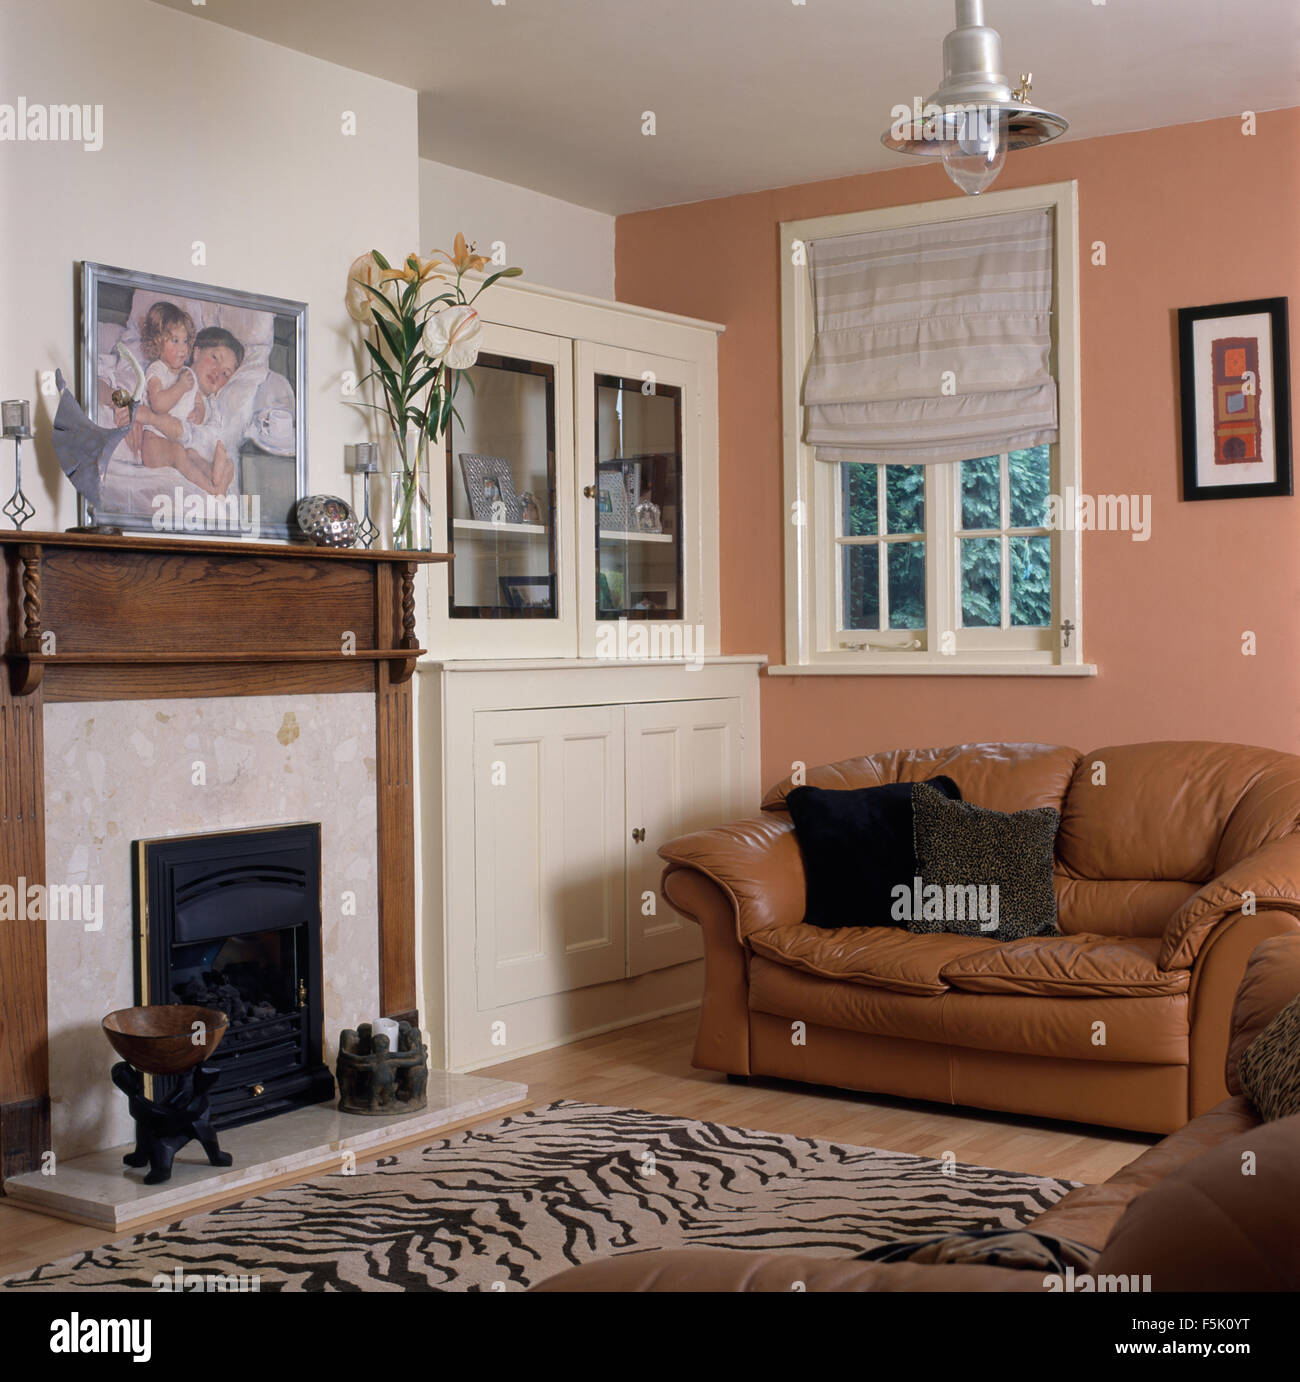 white blind on window above tan leather sofa in pink nineties living room with tiger print